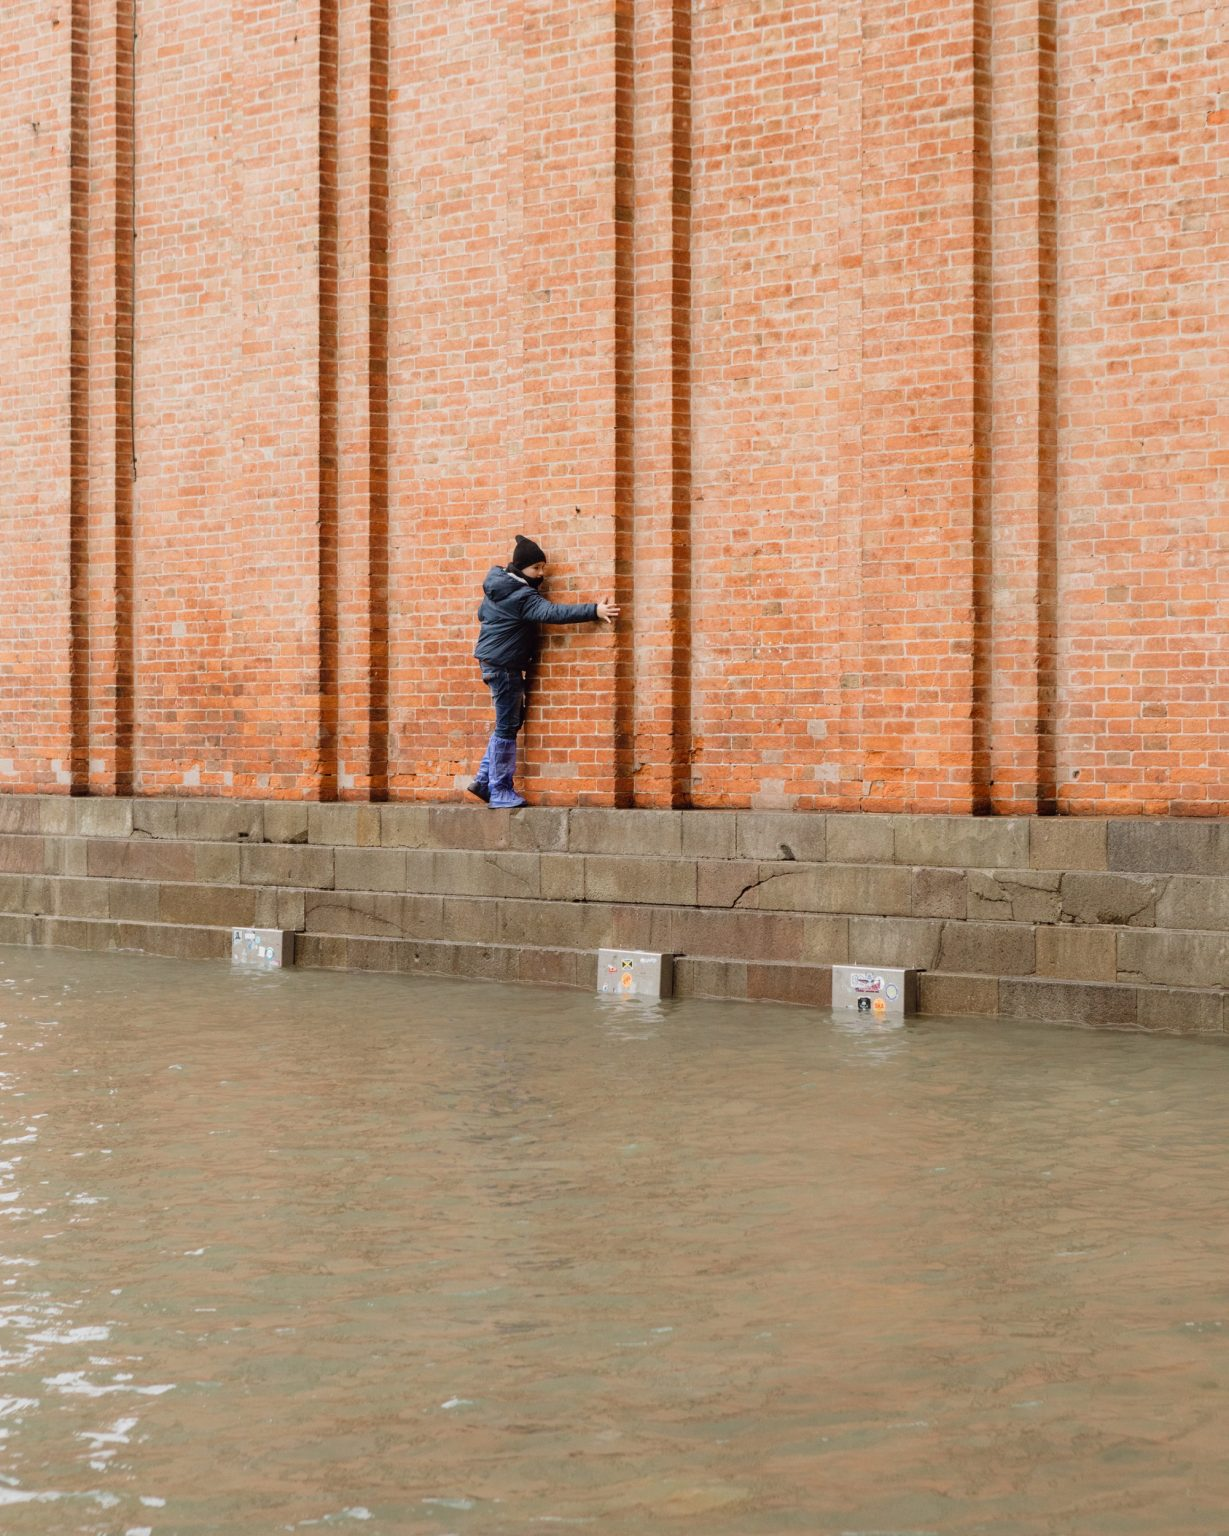 A kid is clinging to the bell tower of St. Mark Square to avoid the water that submerged the city. Exceptional acqua alta, or high water, in Venice, where the tide went up to 187cm, the highest level since the 1966 flood. Brugnaro, the mayor declared a state of disaster. Venice, Italy, 2019